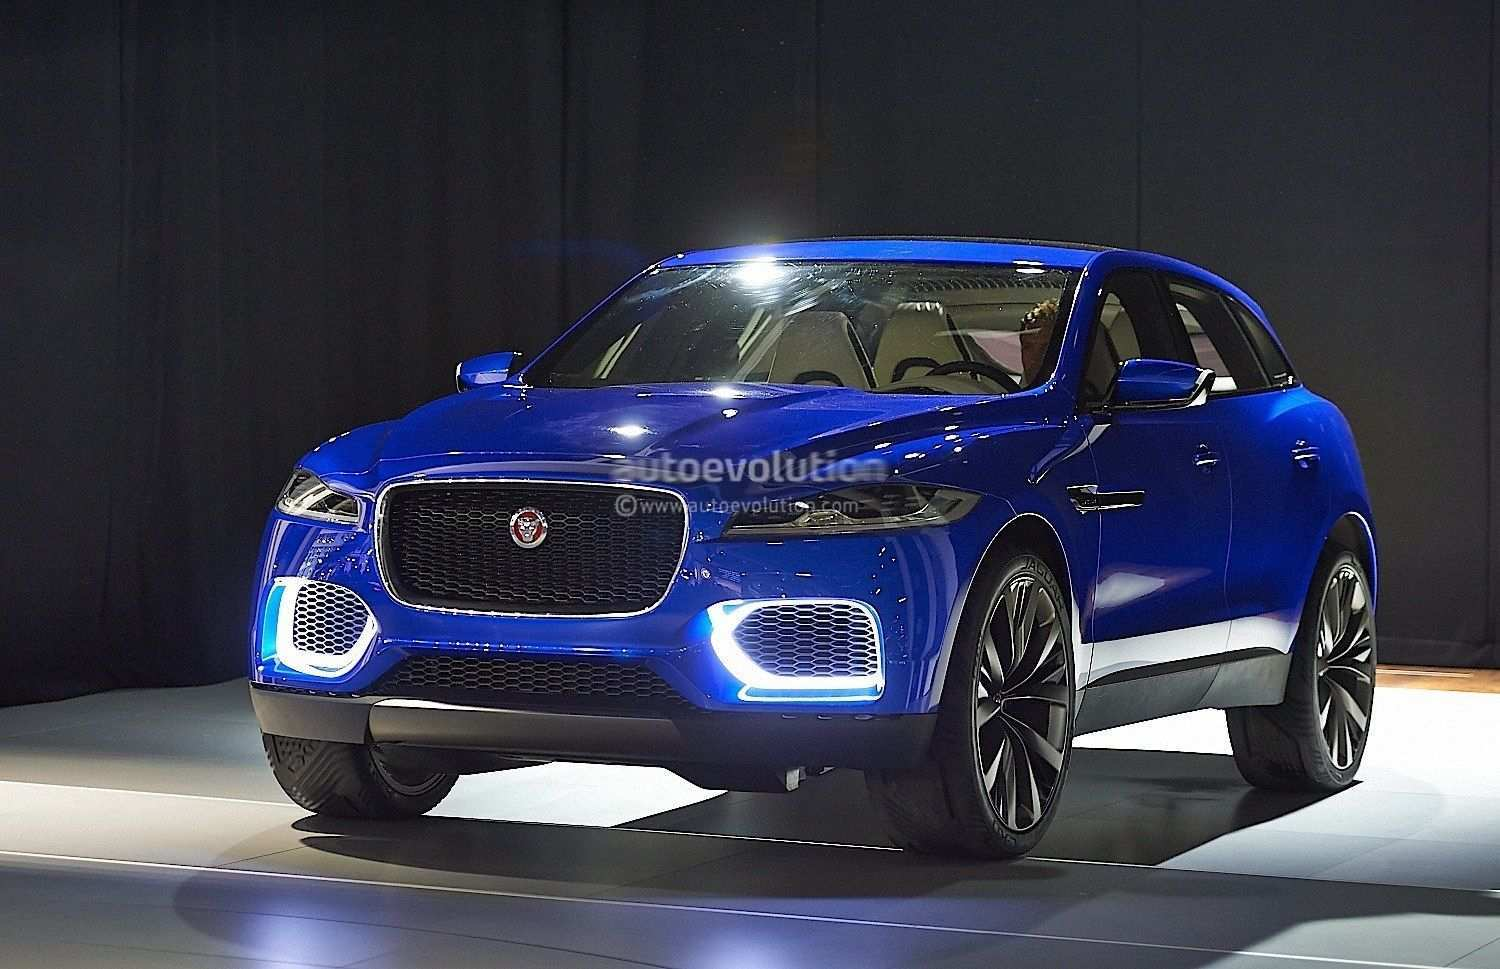 45 Great 2020 Jaguar C X17 Crossover Exterior with 2020 Jaguar C X17 Crossover